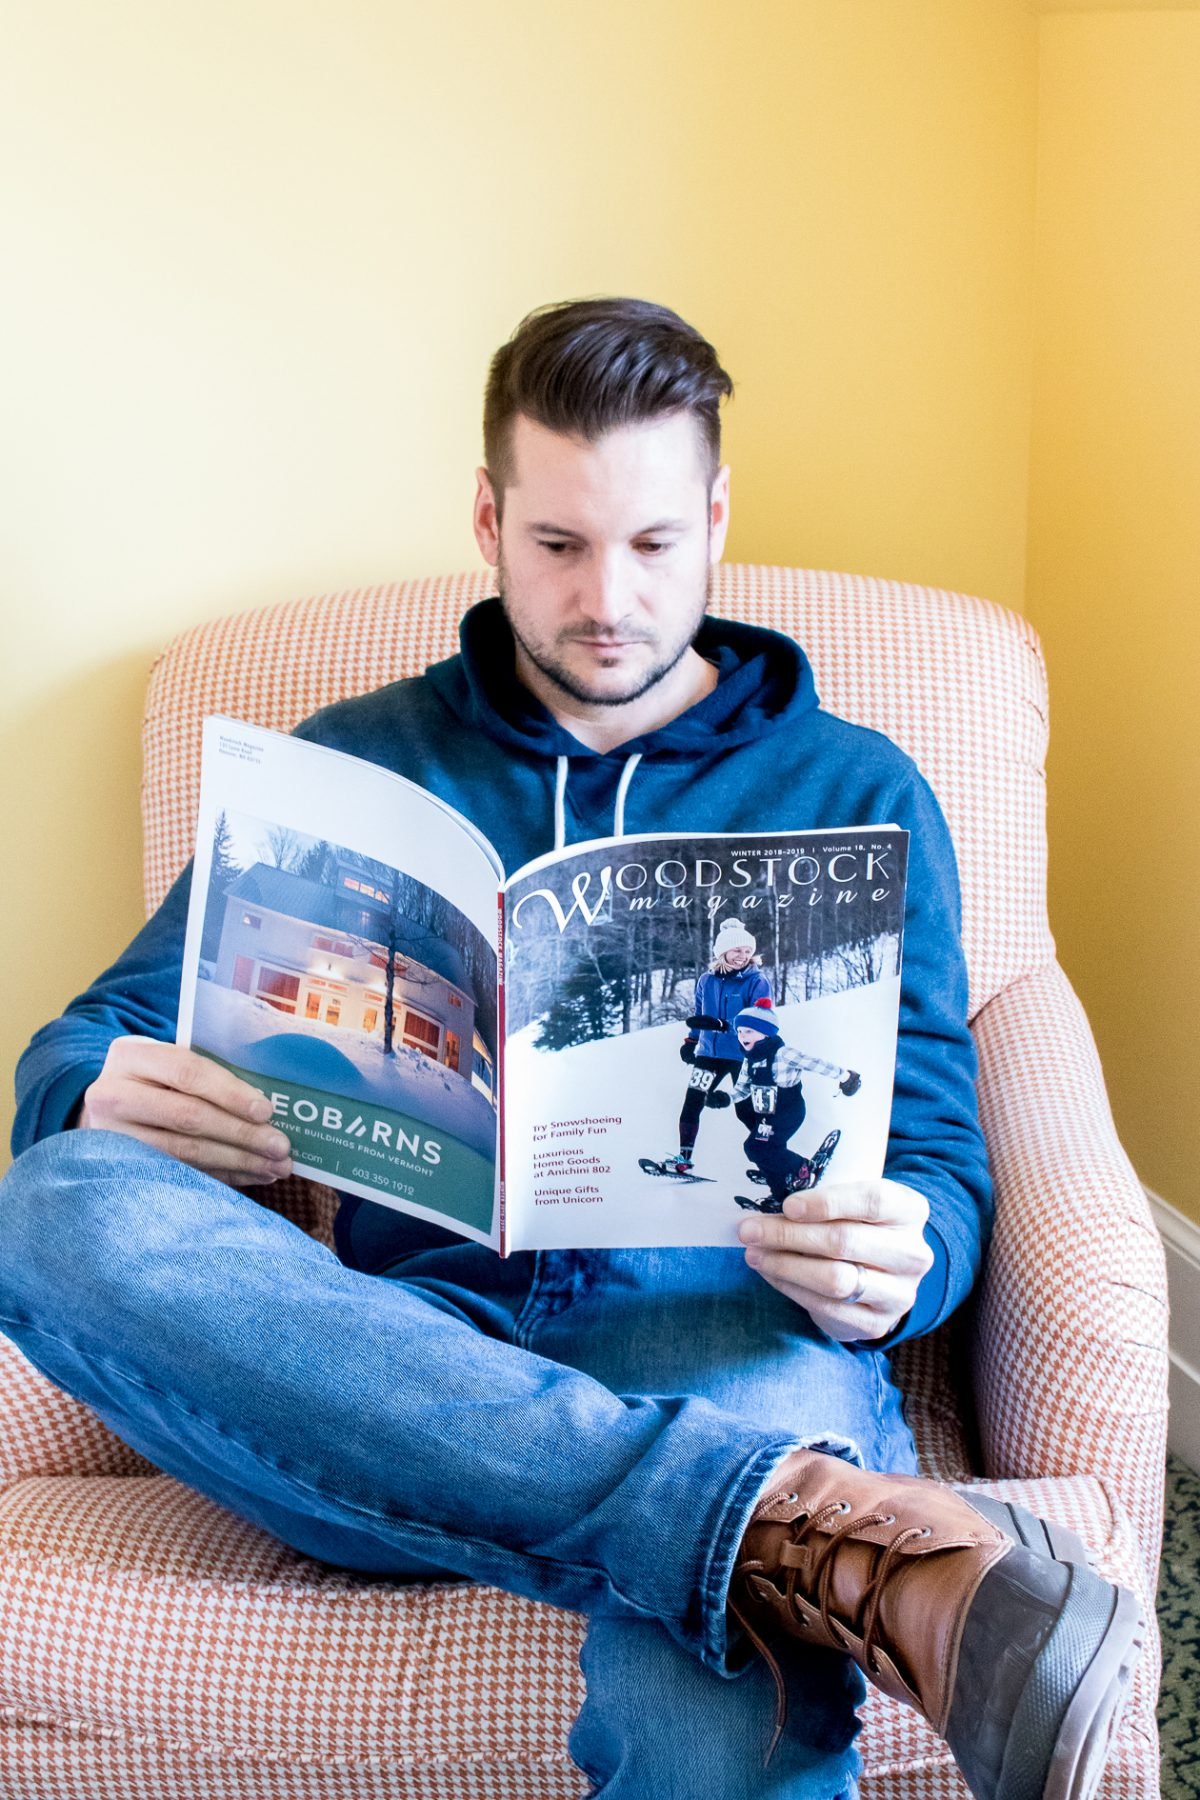 Man wearing a blue sweatshirt reading a Woodstock magazine in a pink chair at Woodstock Inn and Resort in Woodstock Vermont